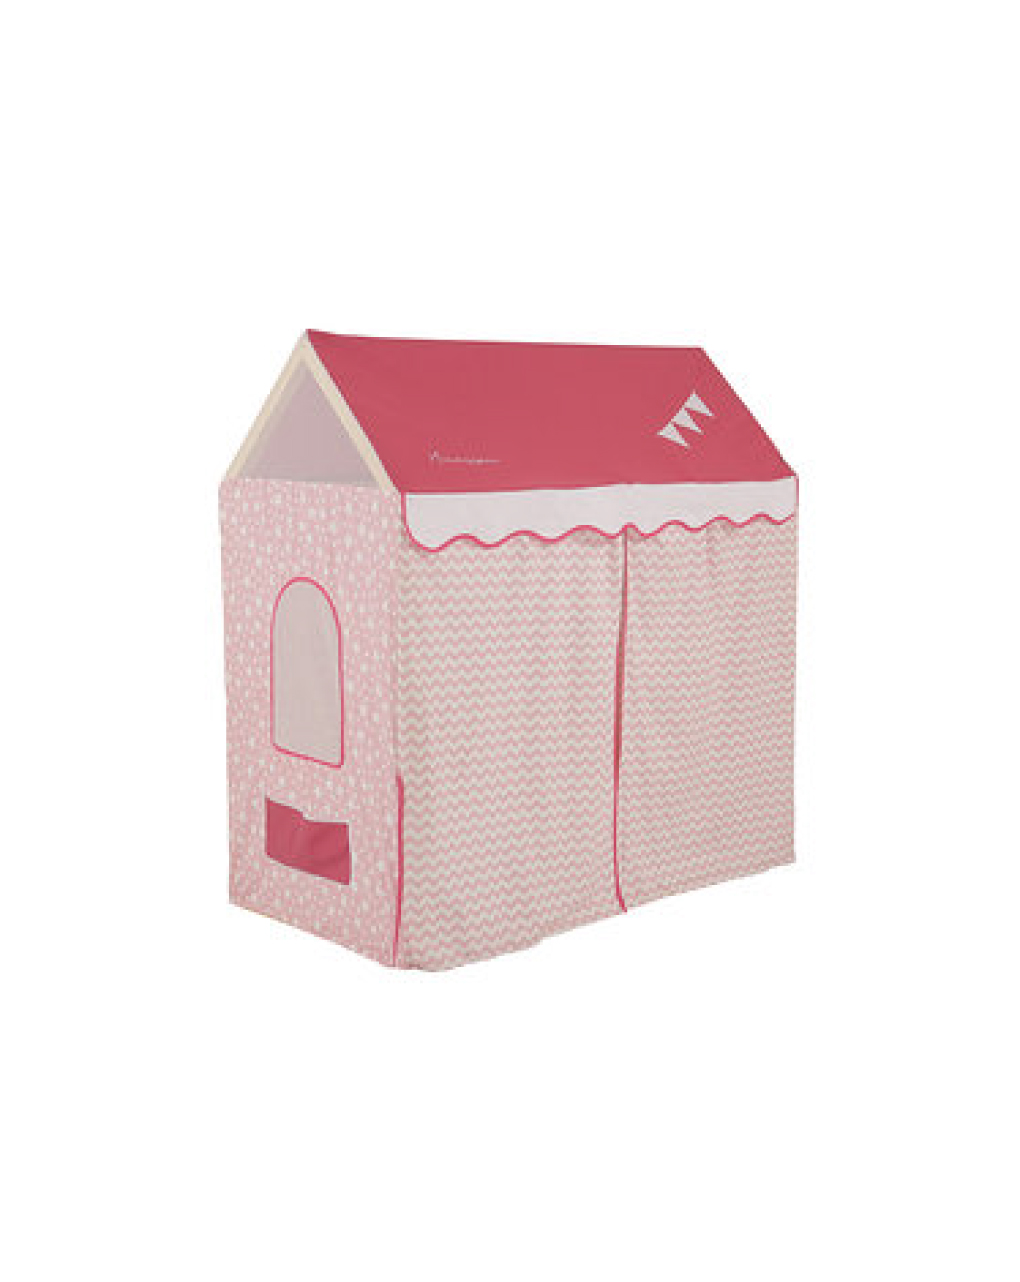 Tipi house cover candy - Micuna